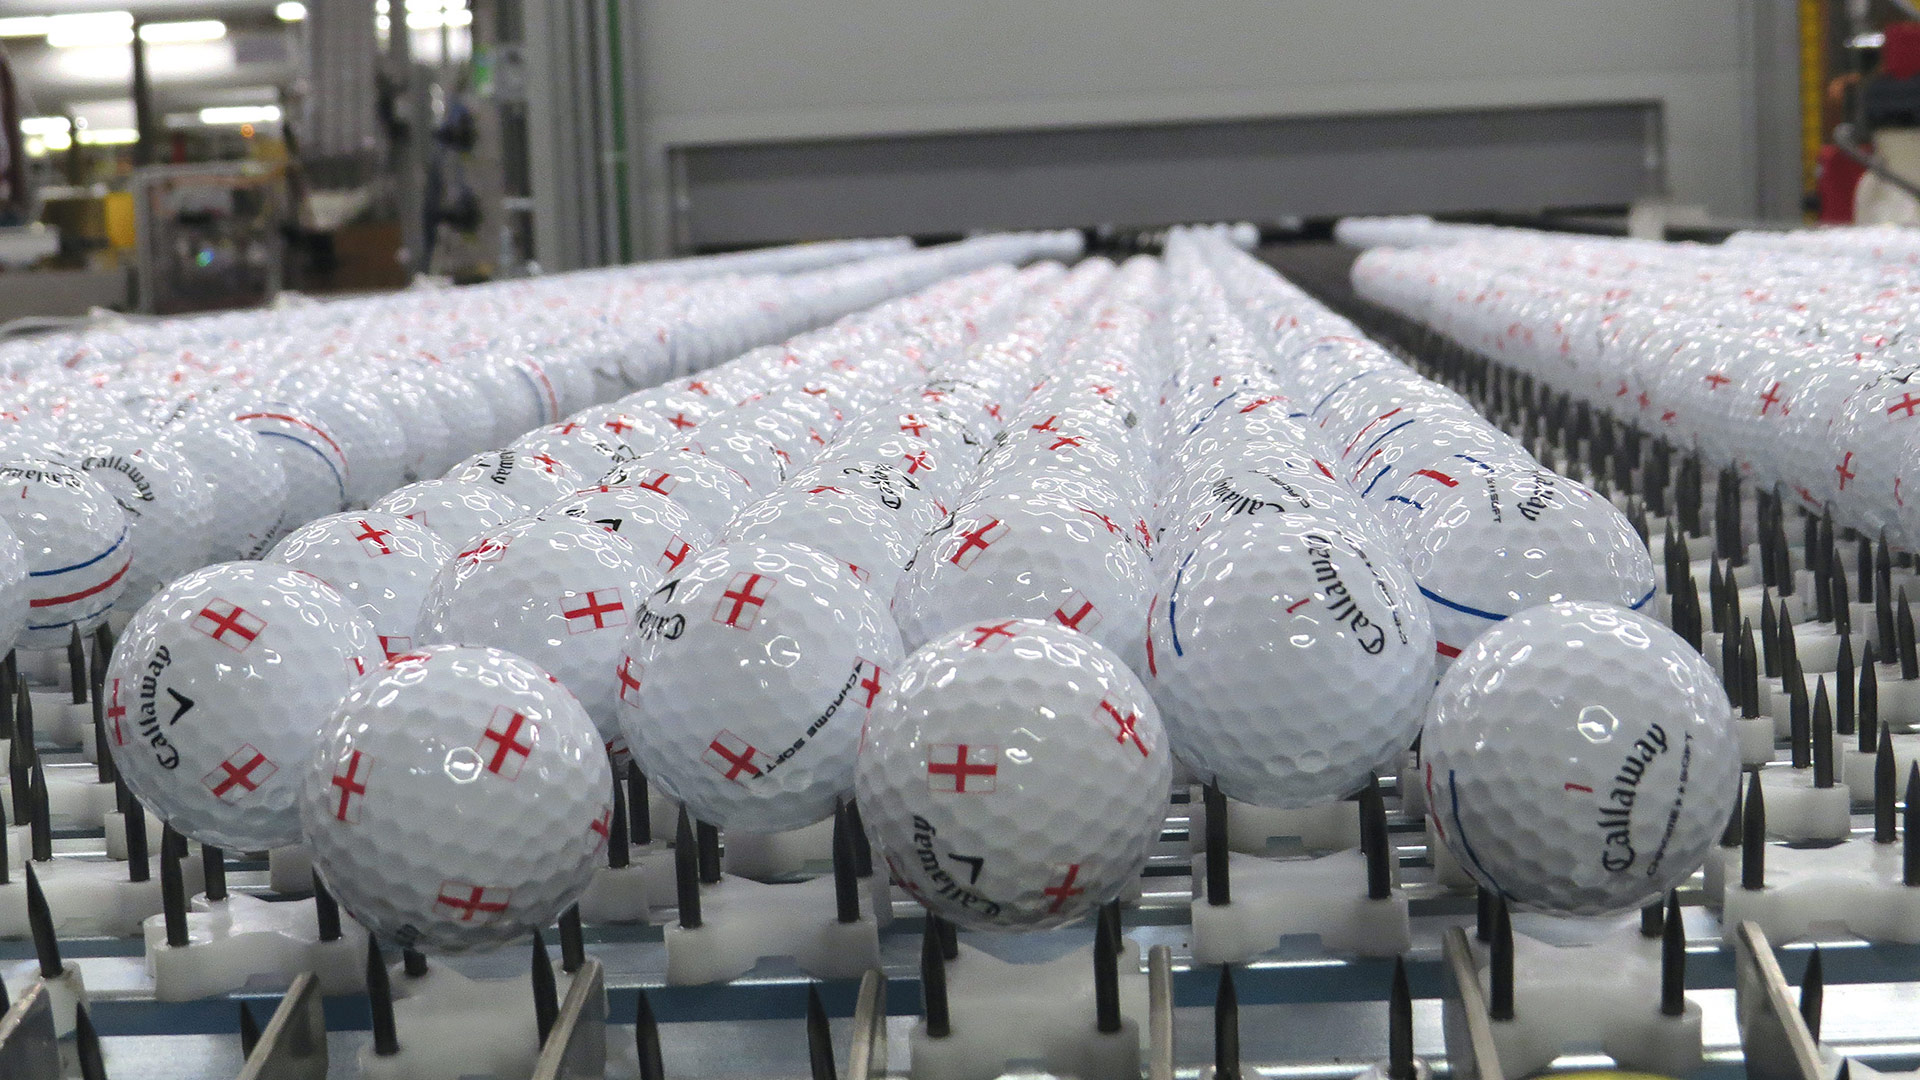 Between 200,000 and 250,000 golf balls roll out of Callaway's Chicopee plant every day.